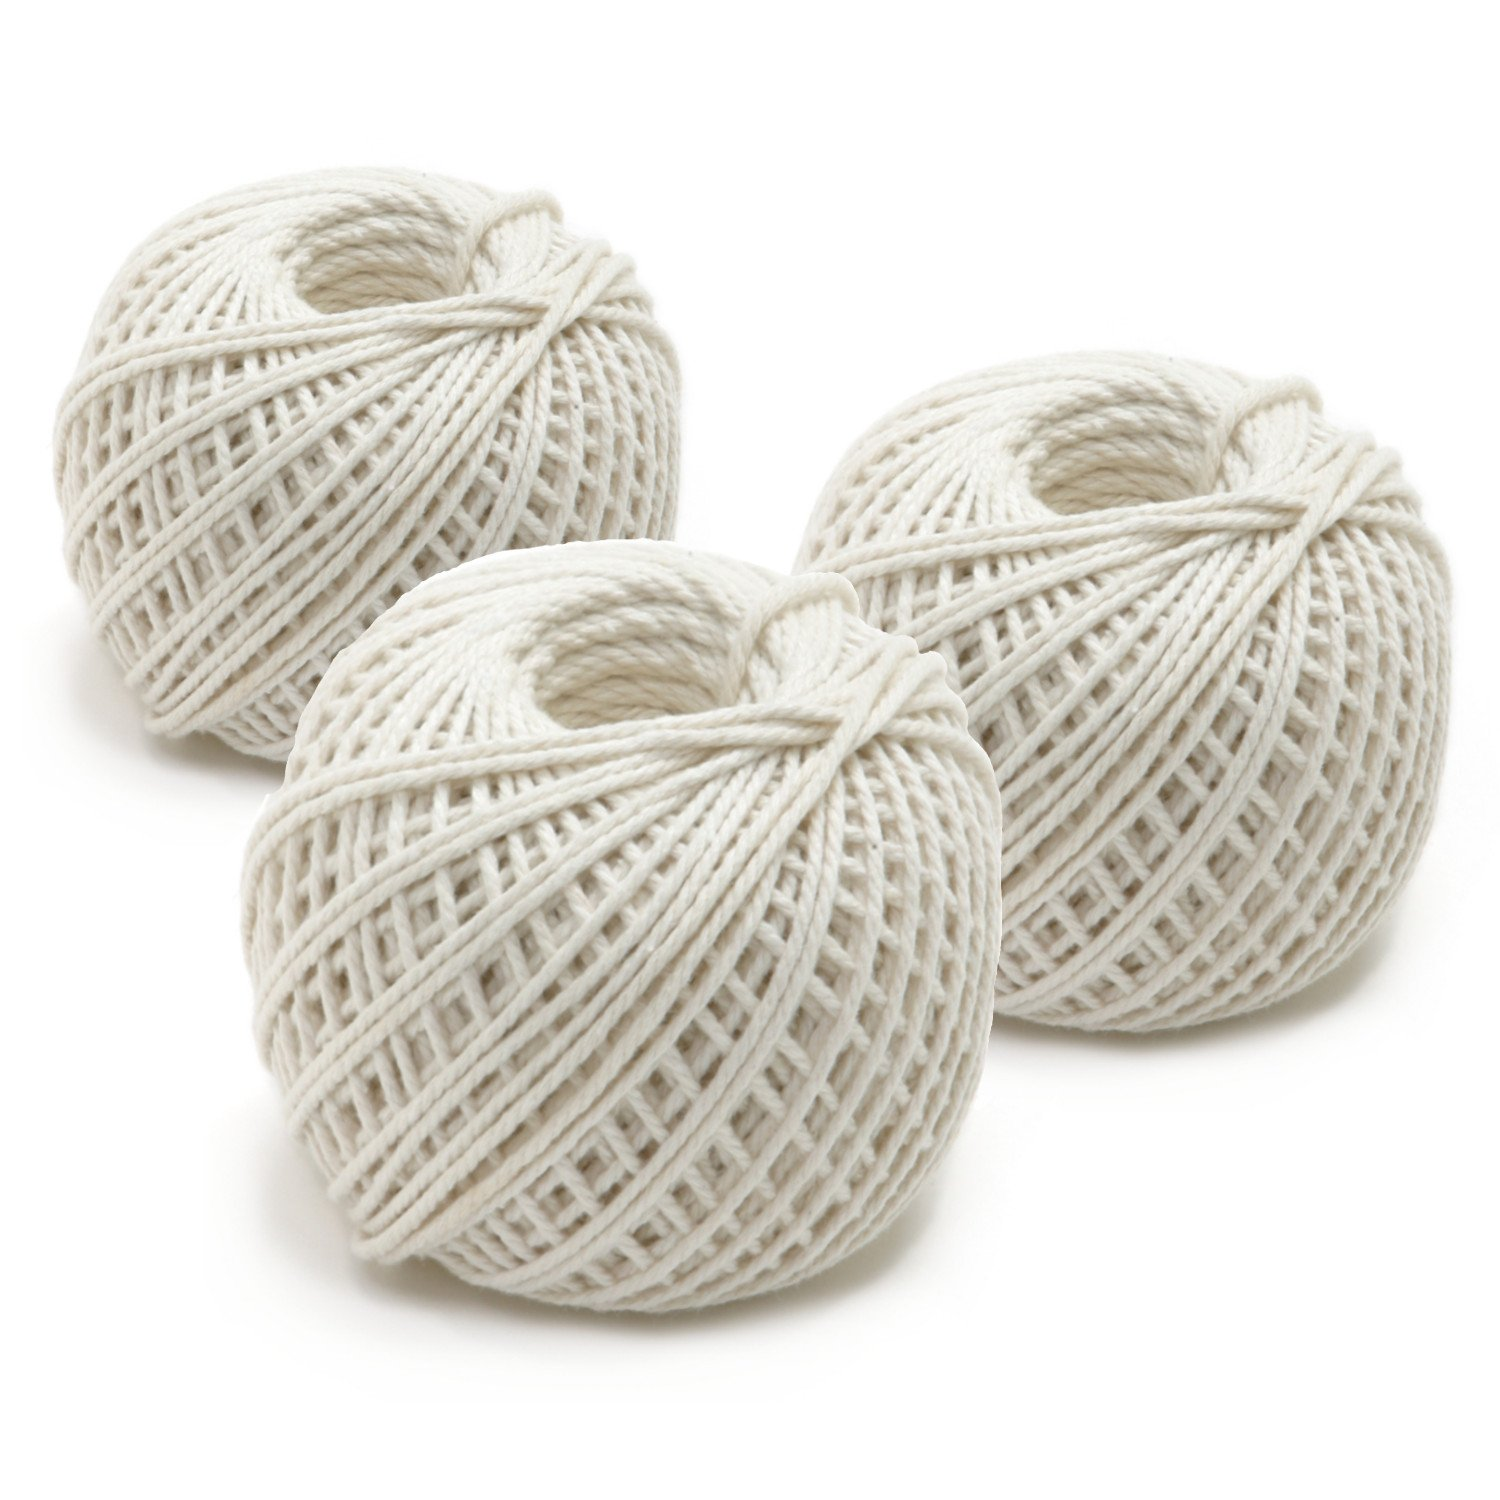 Norpro 100% Cotton 220 Foot Rolled Butcher's Twine, Set of 12 by Norpro